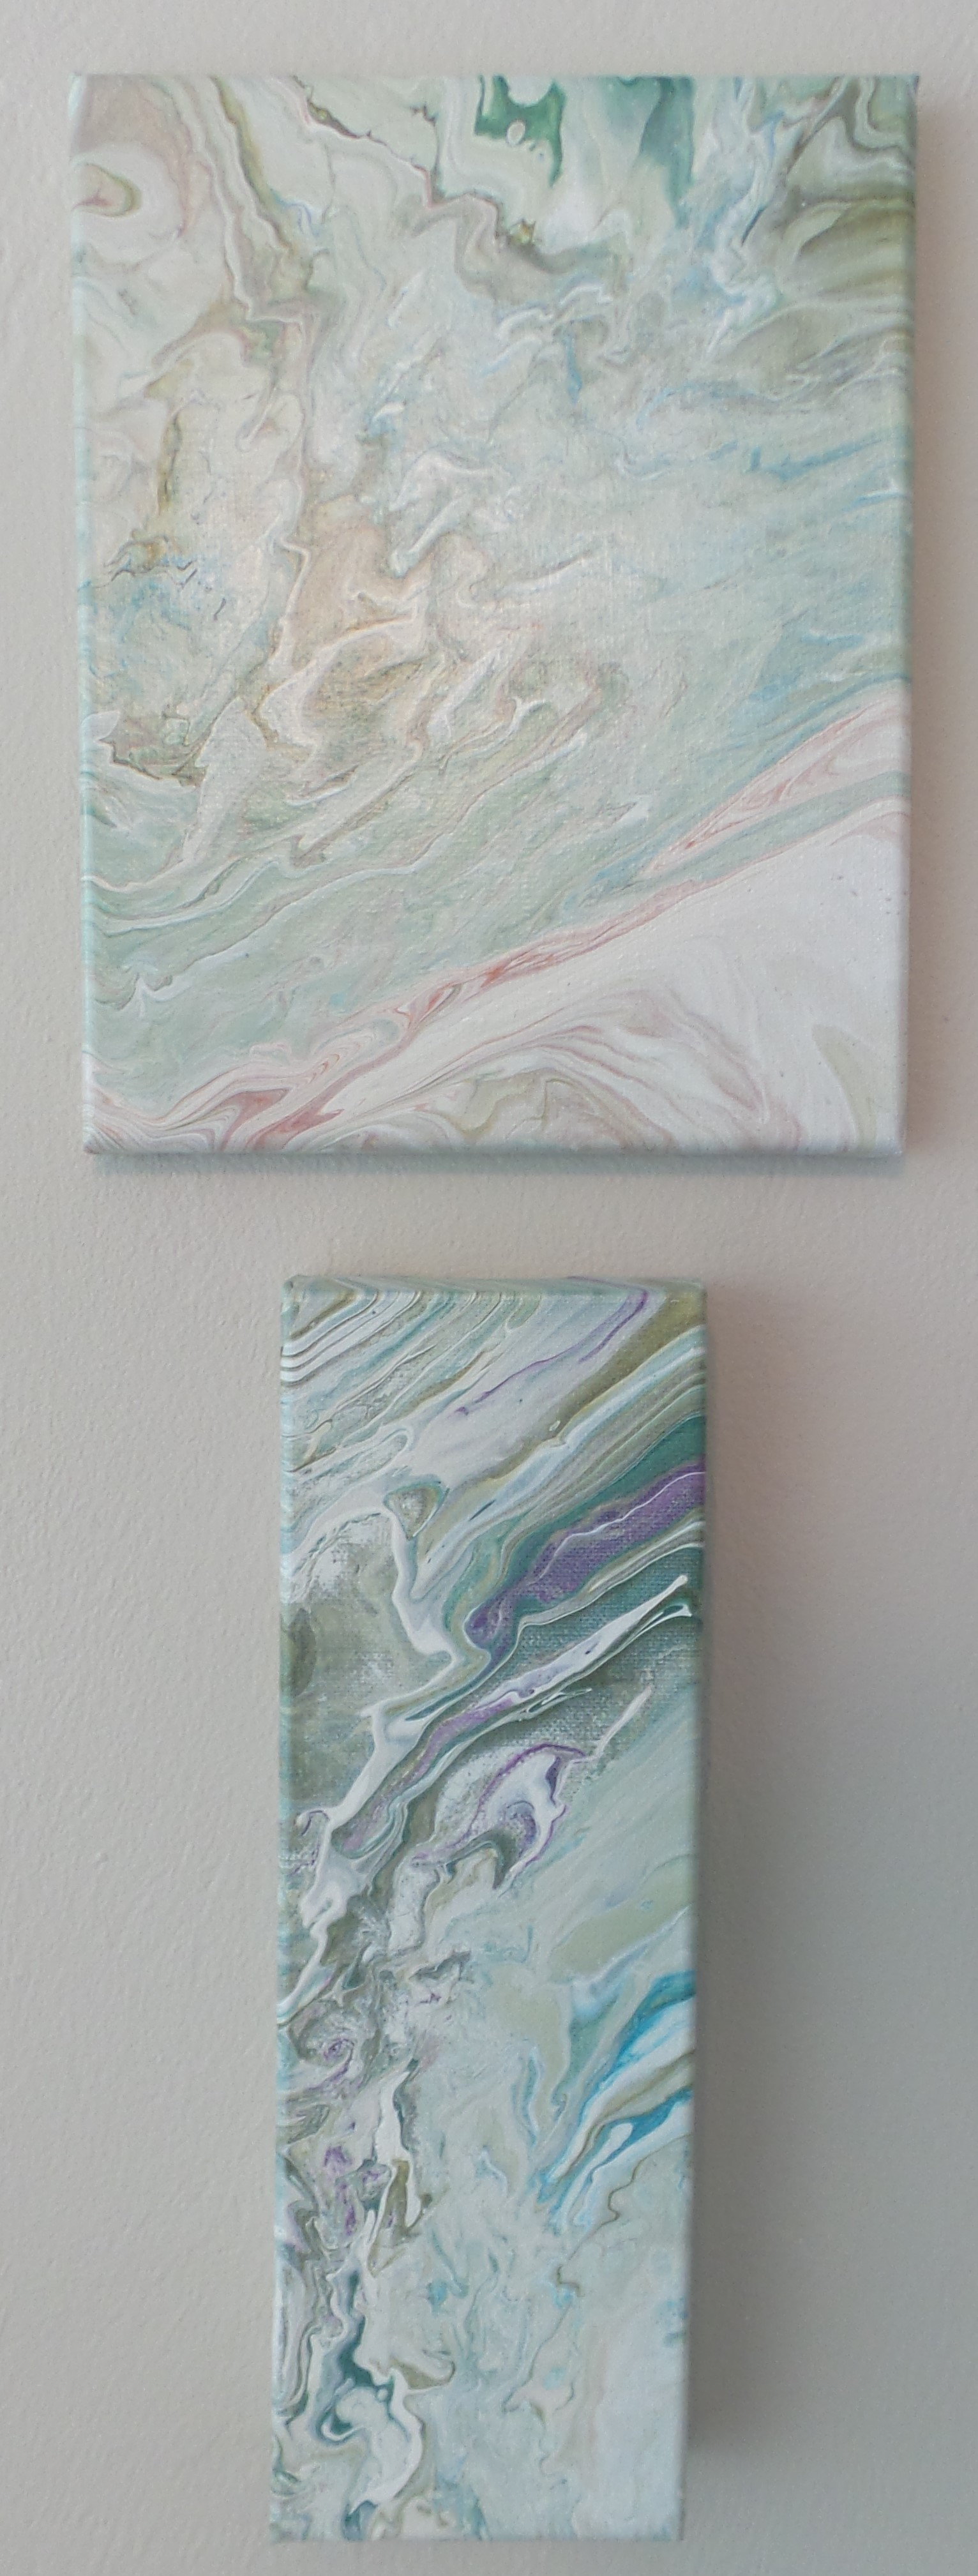 Marble Composition no. 4